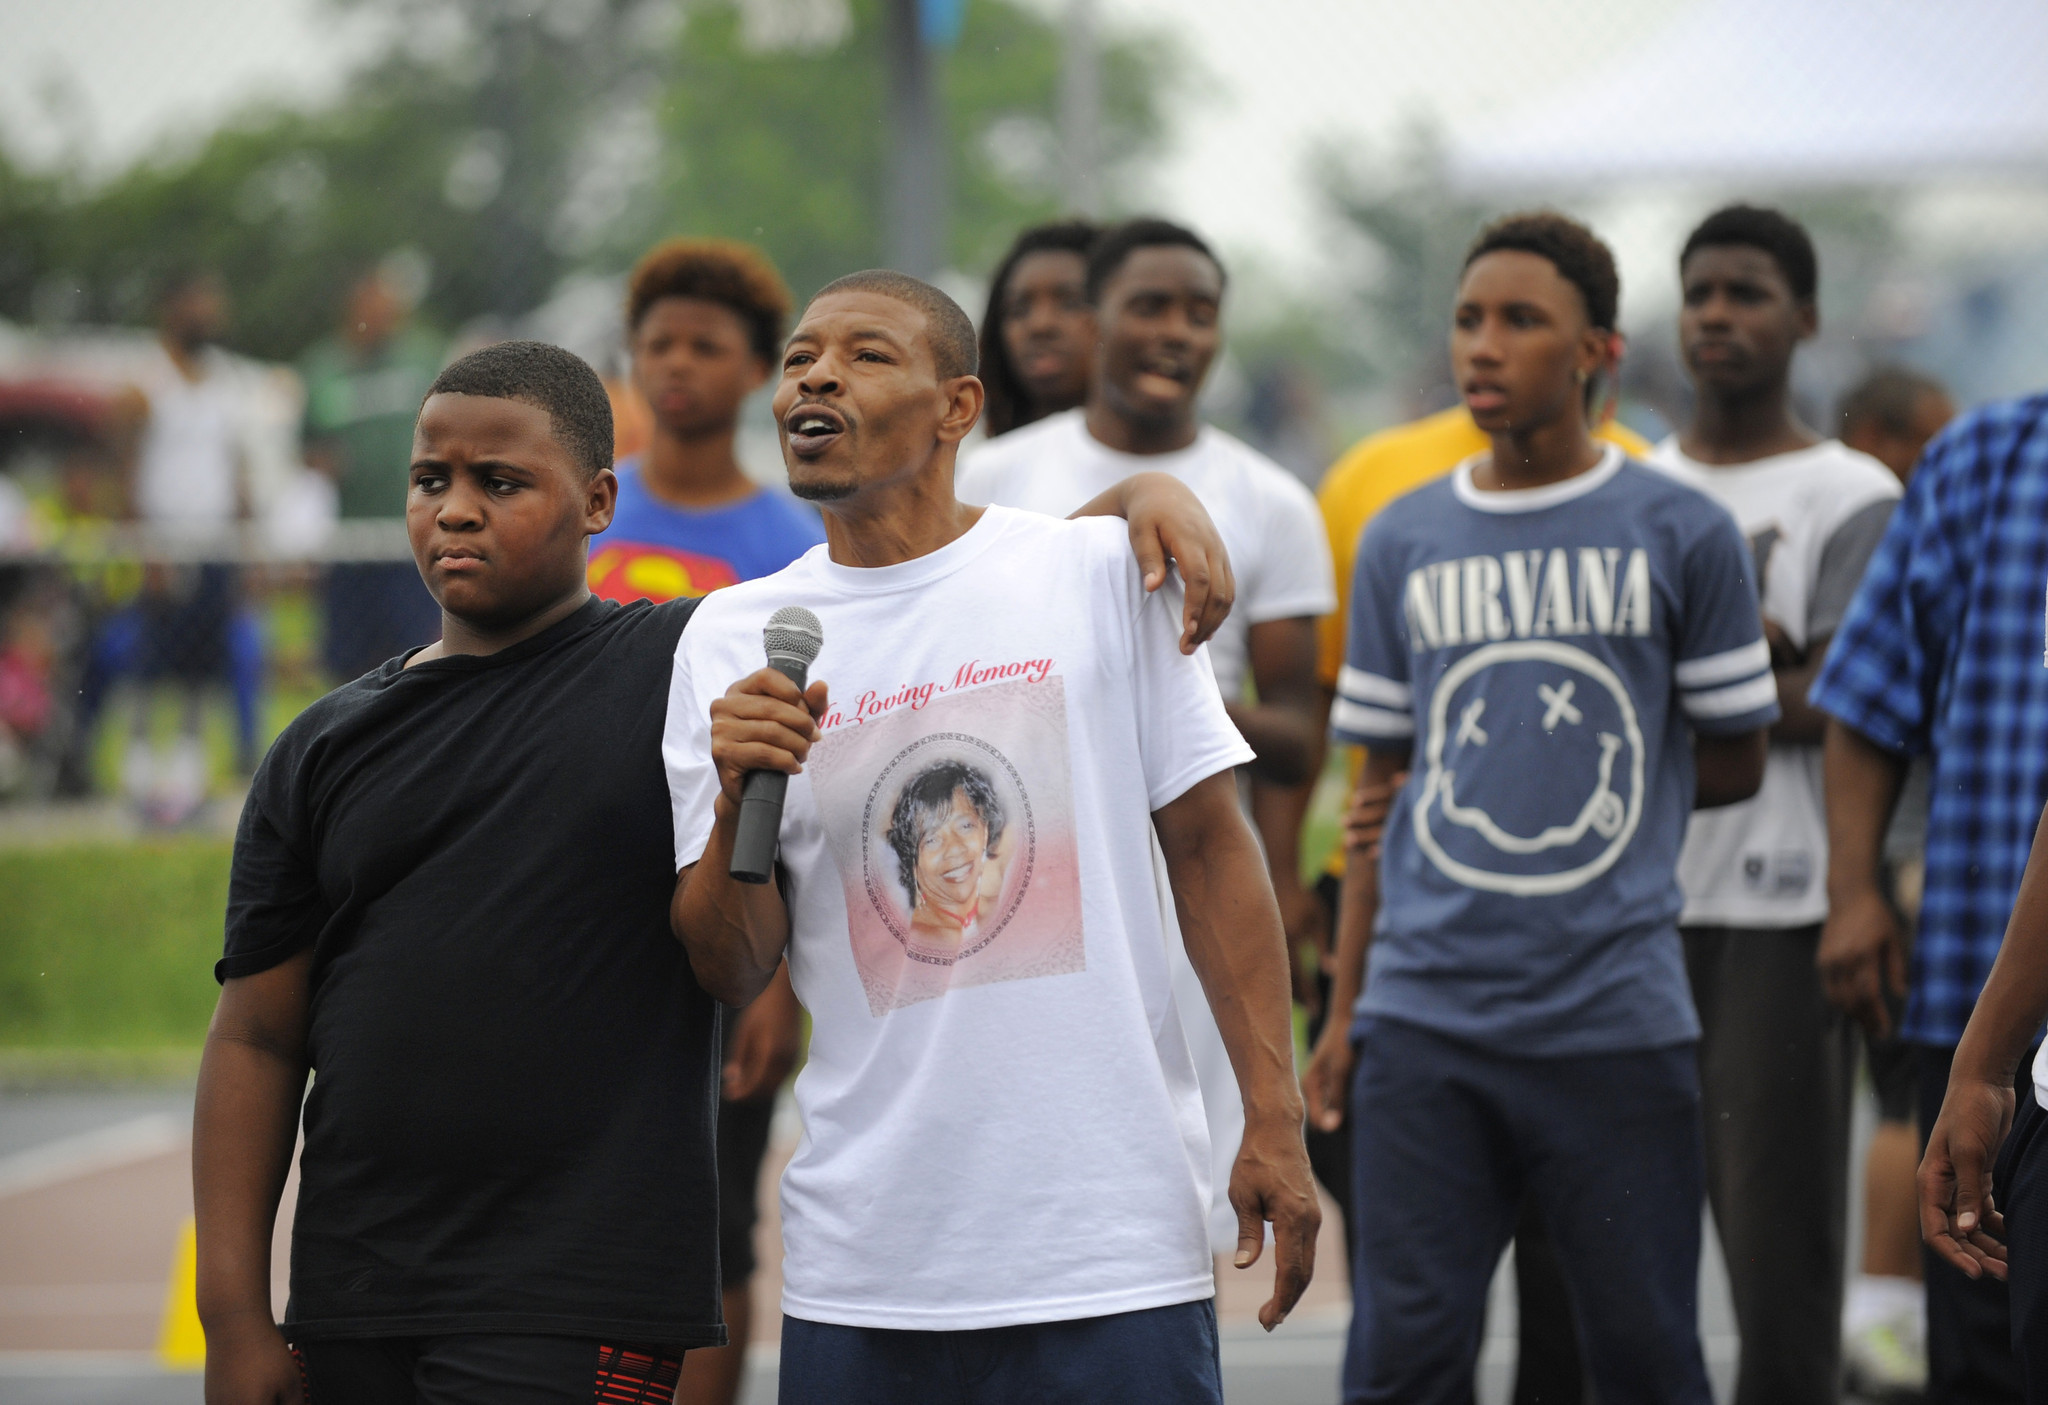 d63bd35a7da Muggsy Bogues returns to Baltimore to host event in memory of his sister -  Baltimore Sun